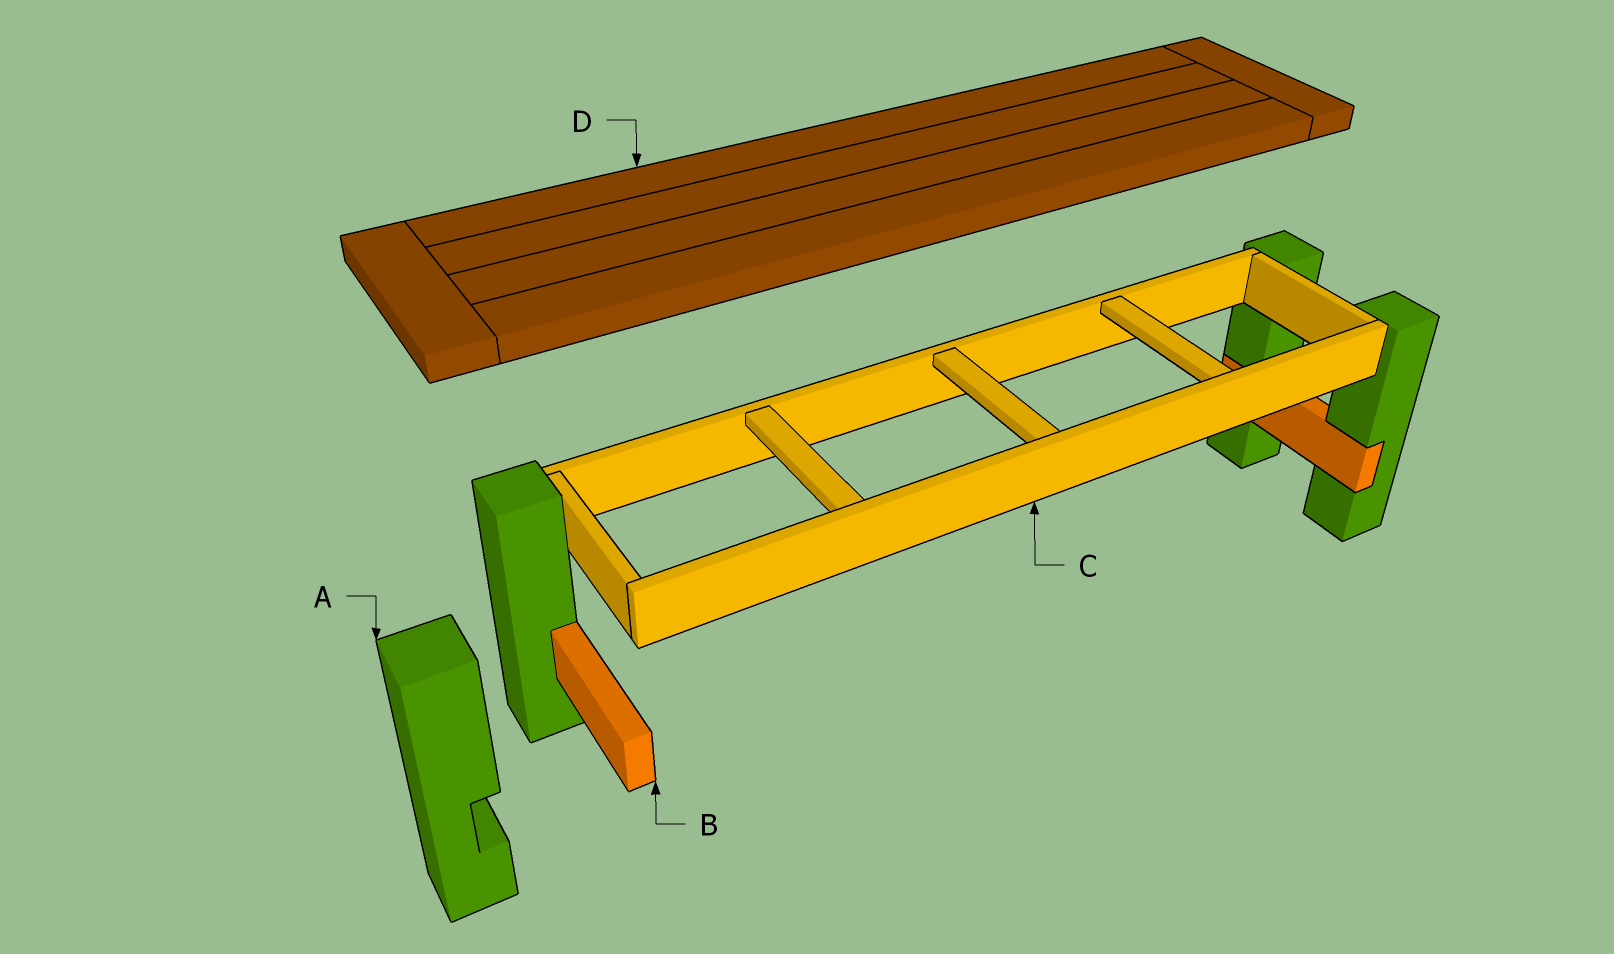 How To Build A Bench Seat Howtospecialist How To Build Step By Step Diy Plans Diy Bench Seat Diy Wood Bench Wooden Bench Seat